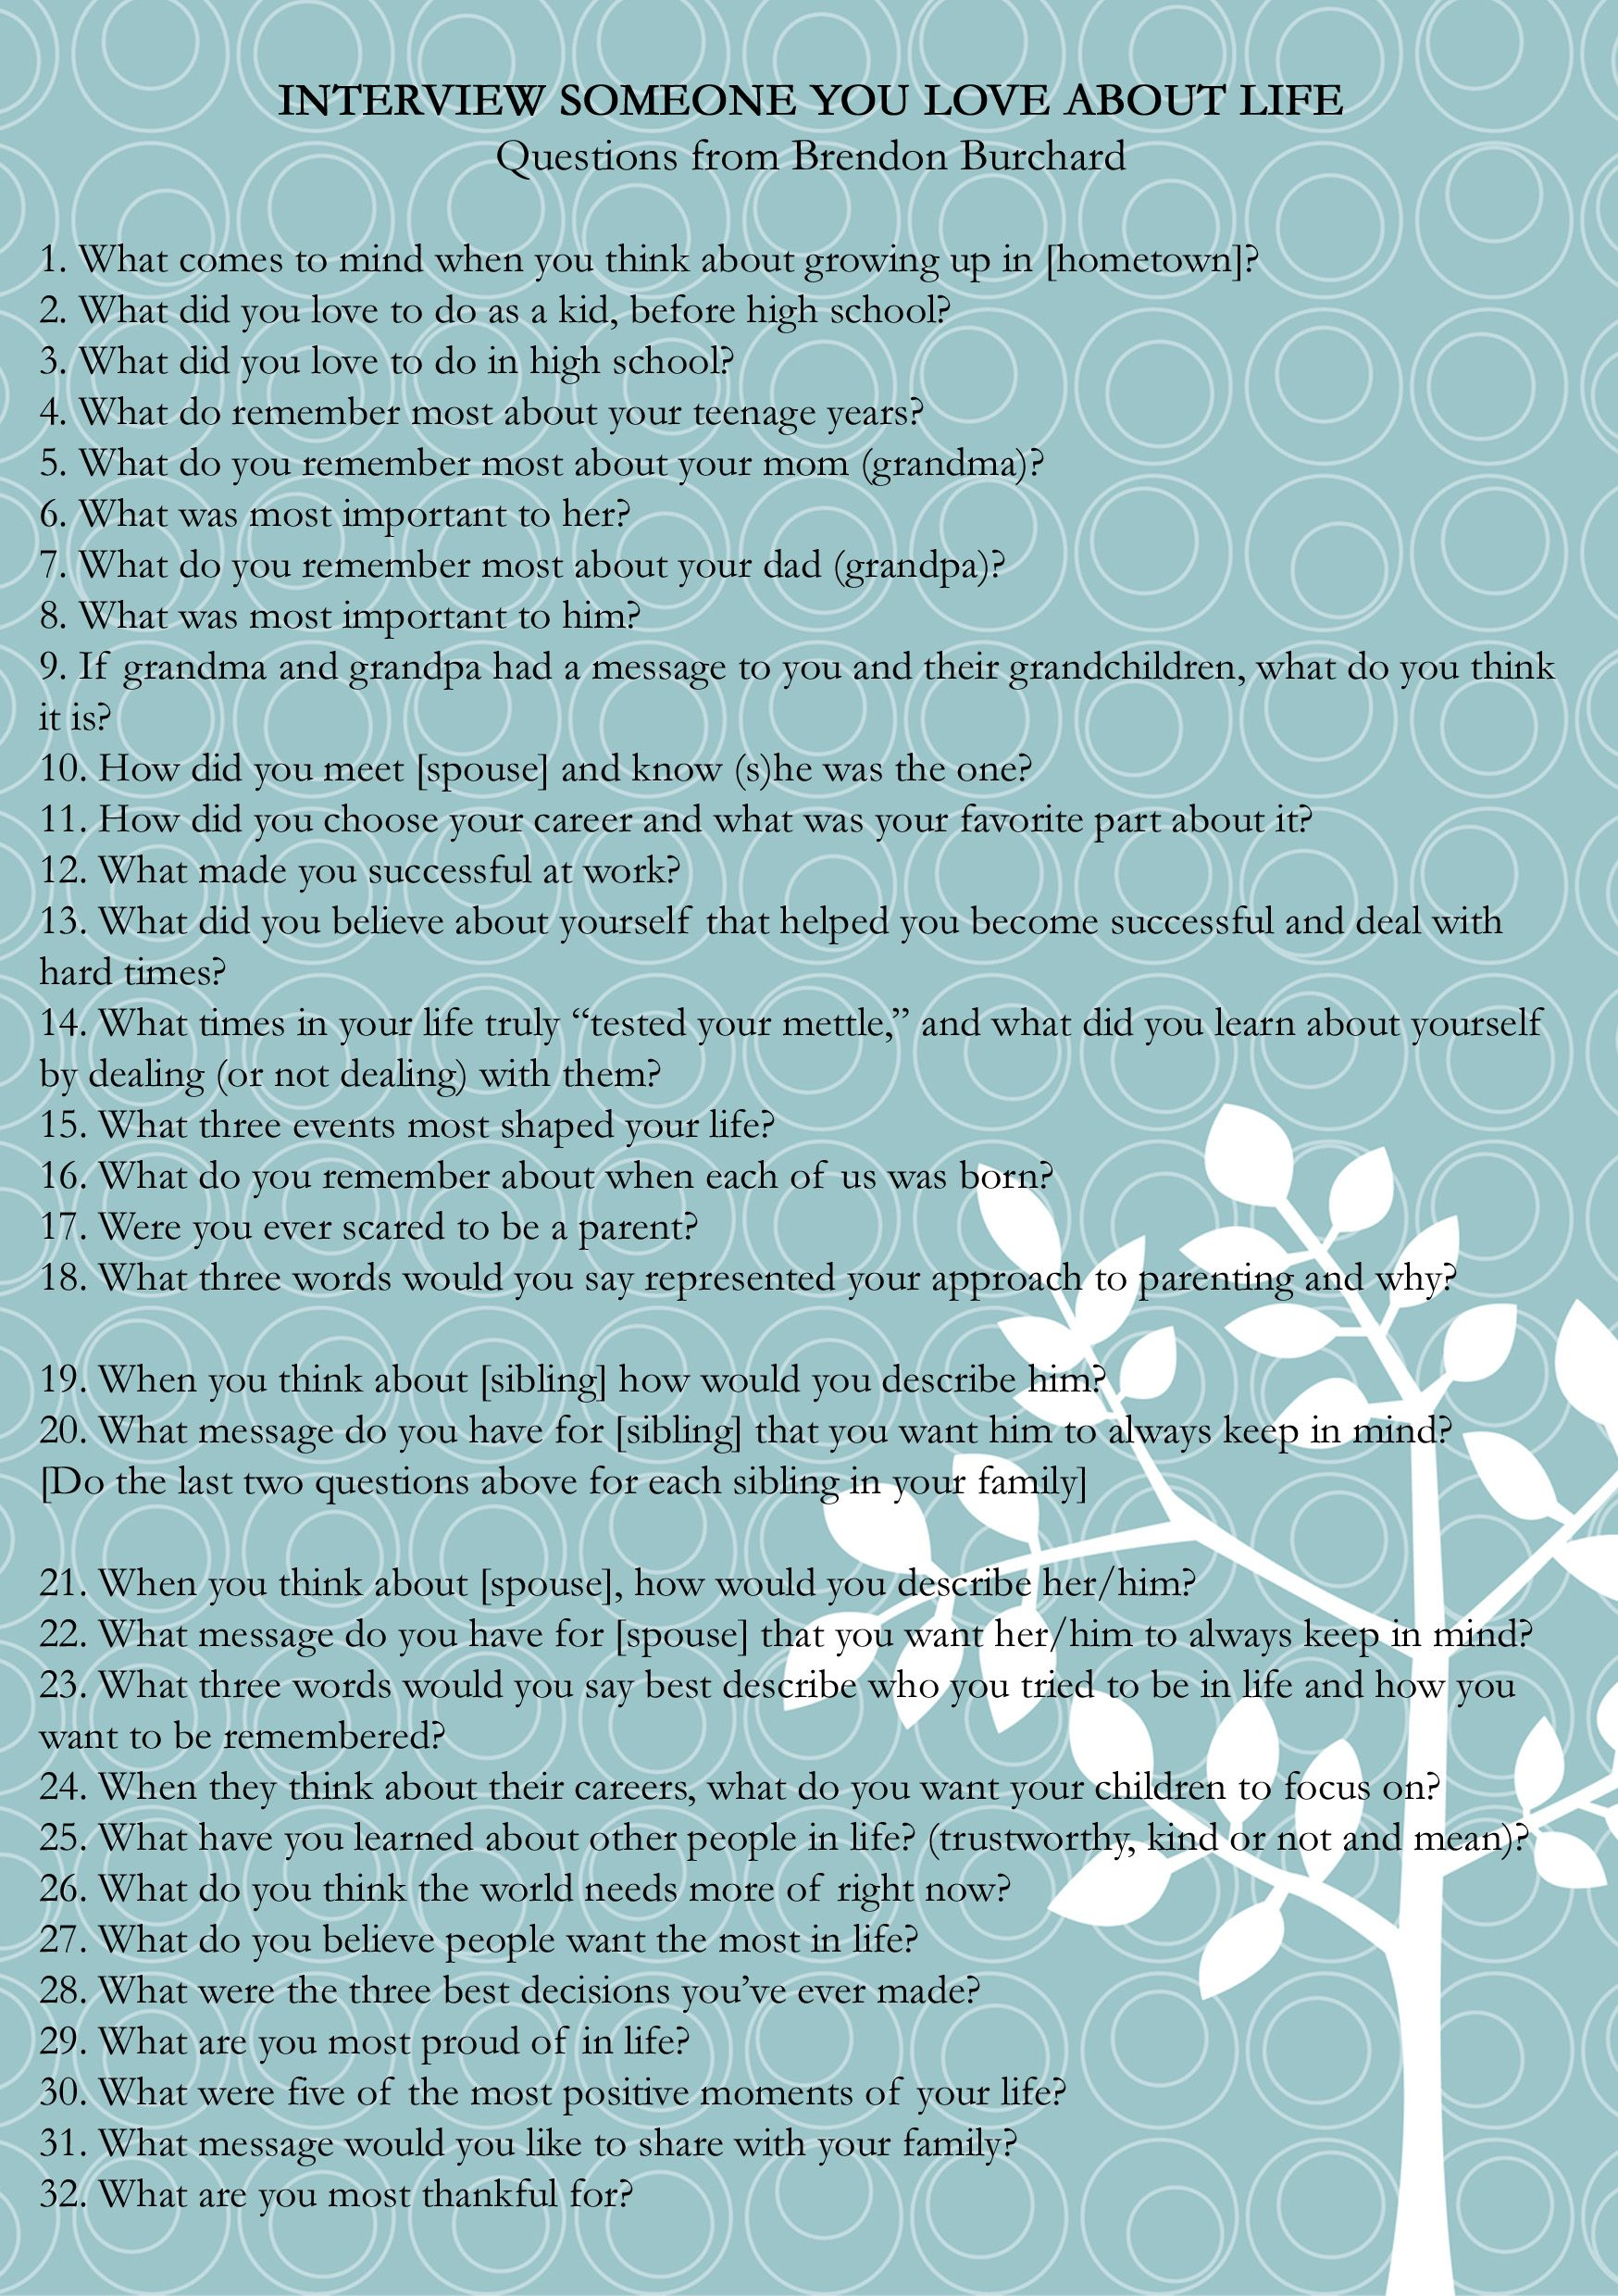 brendan burchard recently posted these interview questions i brendan burchard recently posted these interview questions i thought they would be good not just